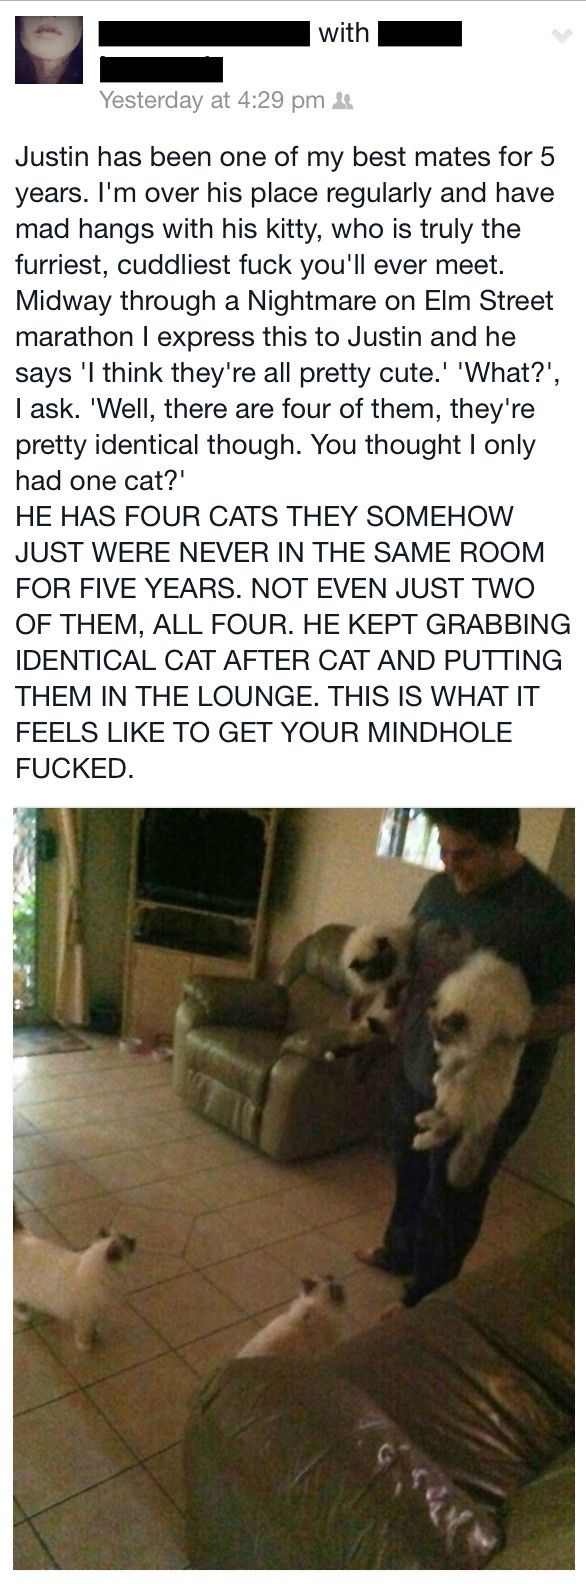 My favourite cat story